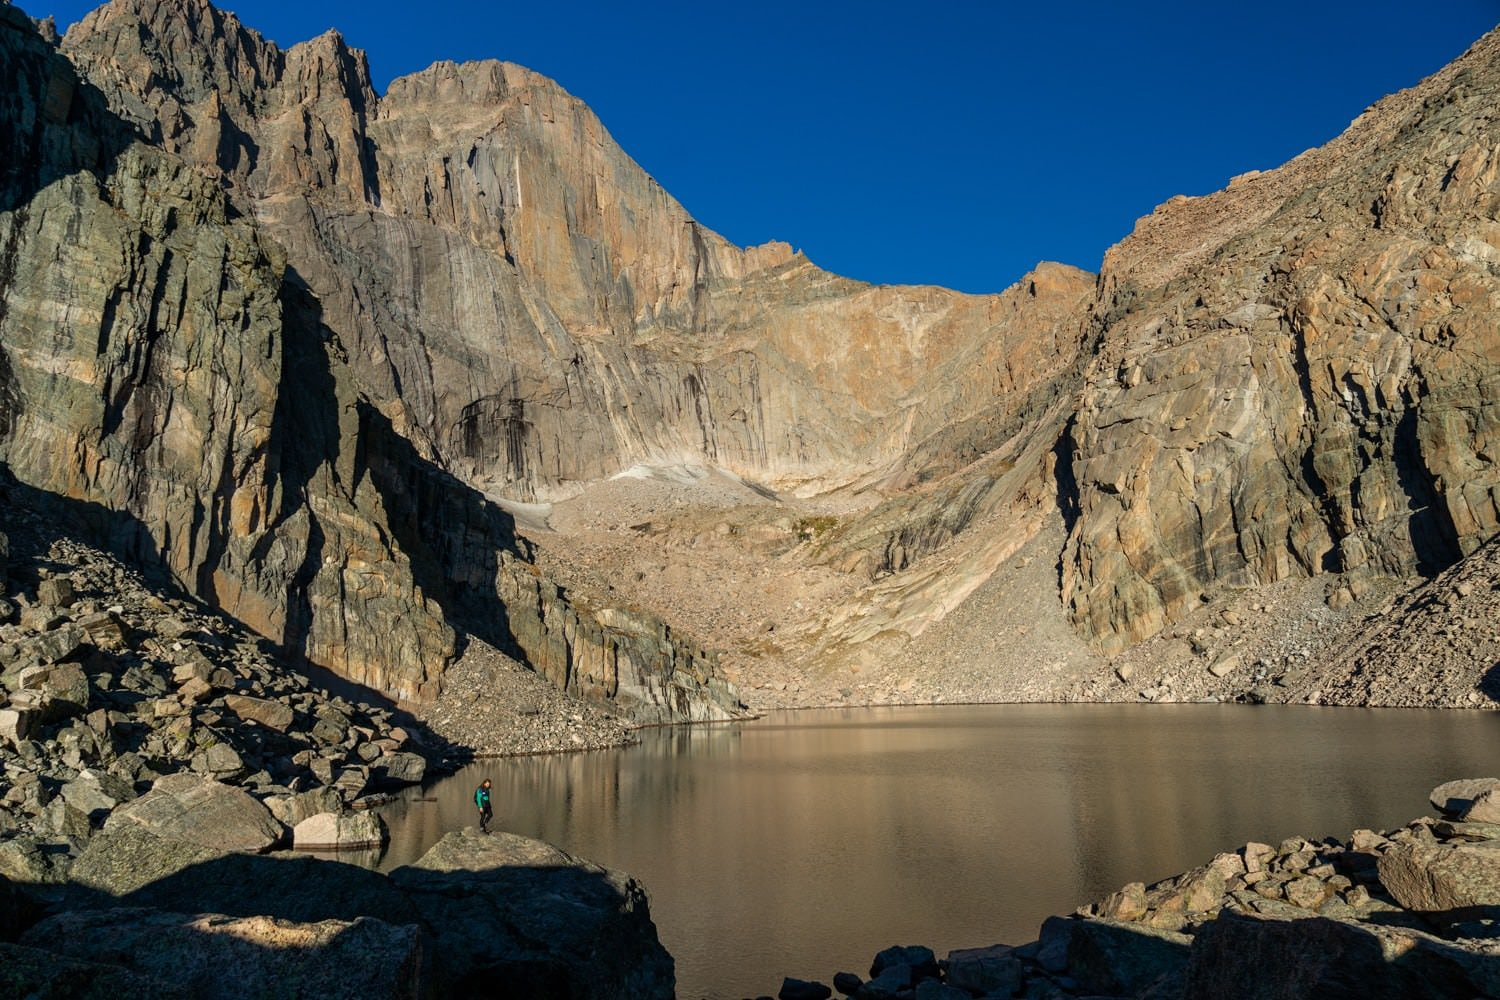 Chasm Lake Rocky Mountain National Park Elopement Locations